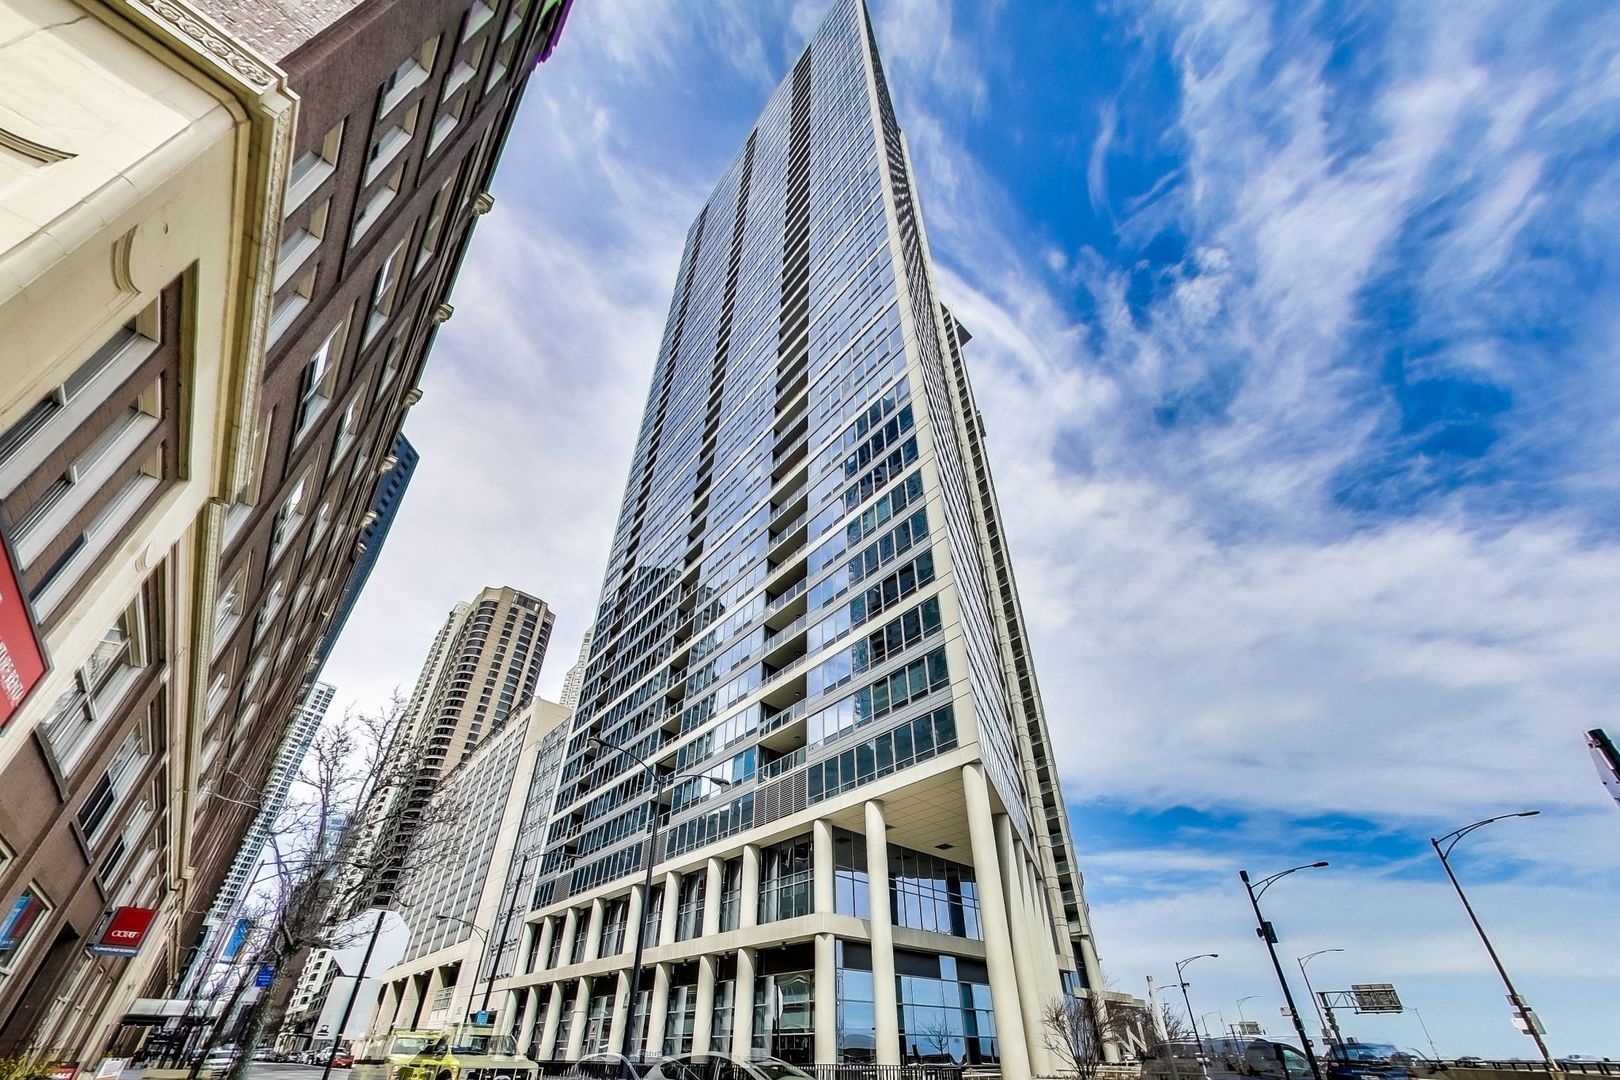 600 N Lake Shore Drive, Chicago, IL 60611